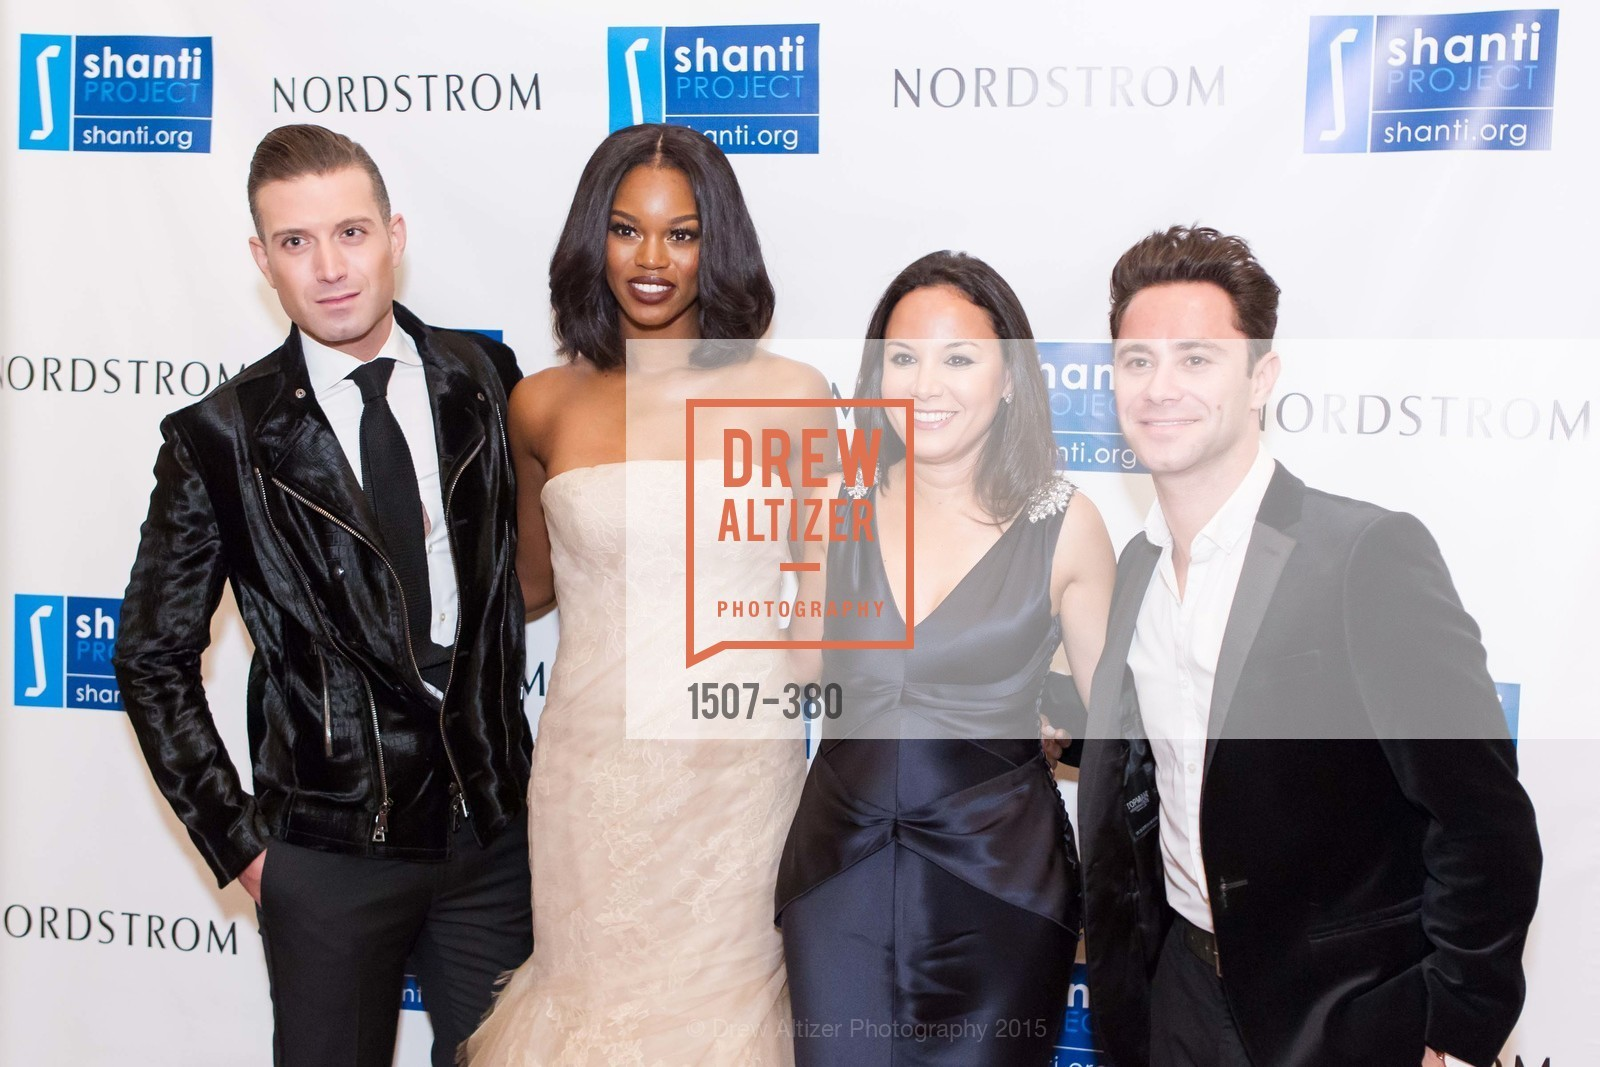 Omar Sharif Jr., Eugena Washington, Bahya Oumil-Murad, Sasha Farber, Shanti Project 41st Annual Compassion is Universal Dinner, Palace Hotel. 2 New Montgomery St, October 14th, 2015,Drew Altizer, Drew Altizer Photography, full-service event agency, private events, San Francisco photographer, photographer California